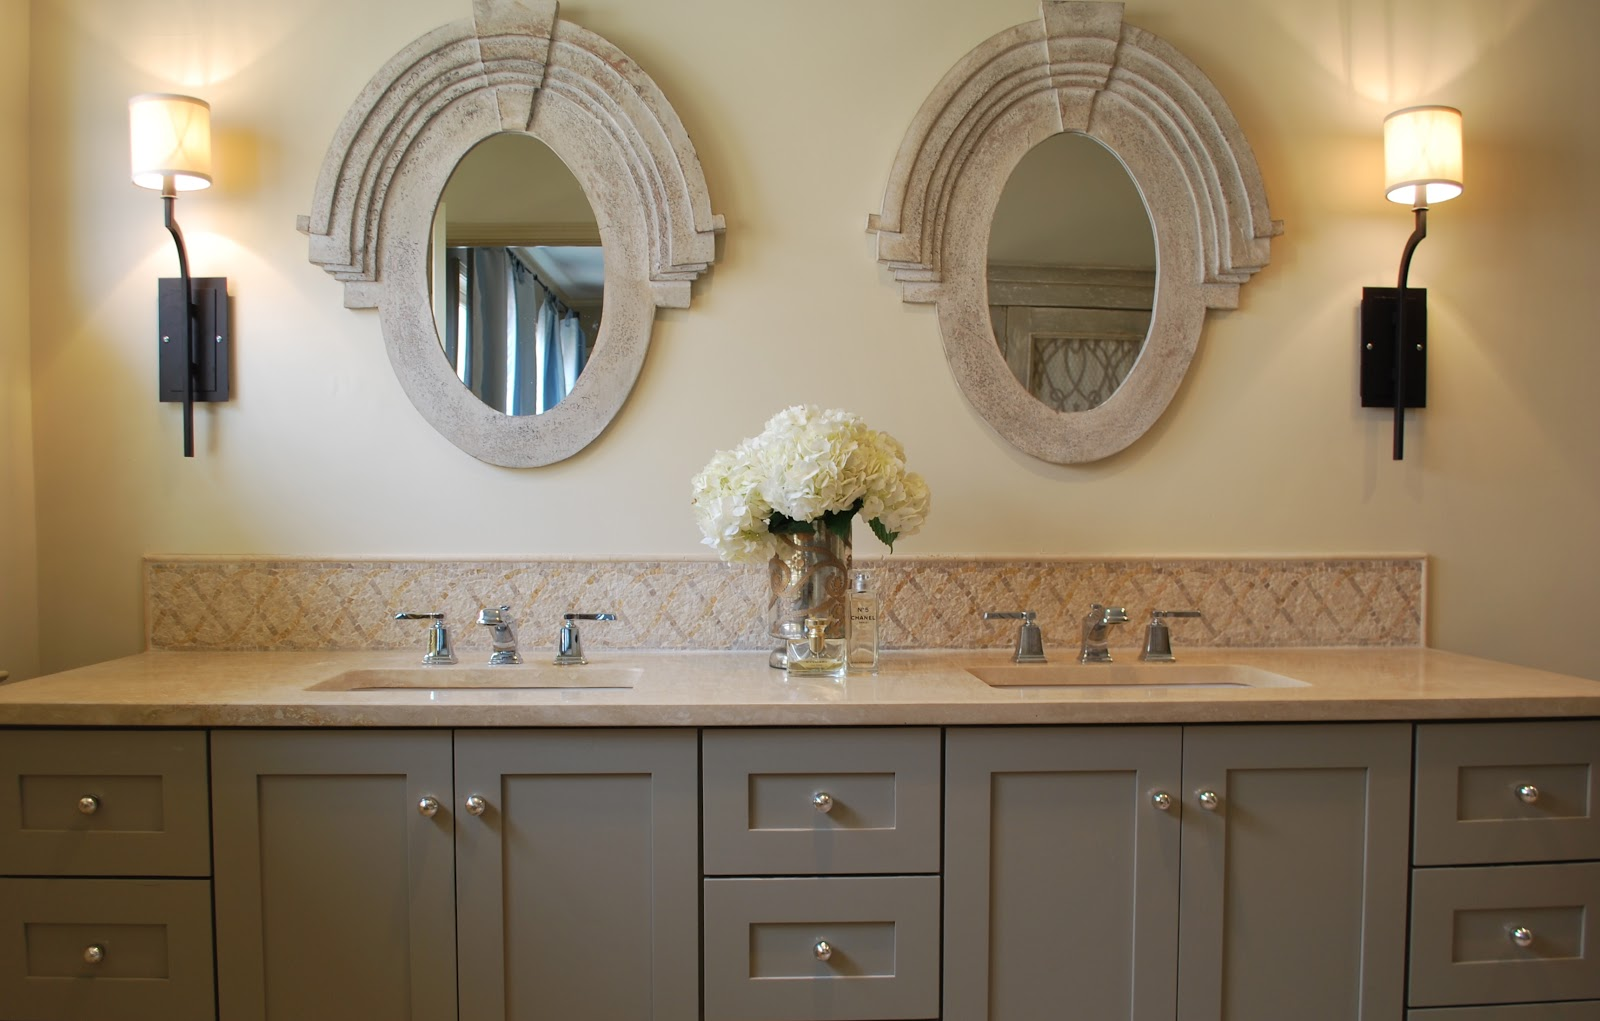 Image of: 18 Stunning Pictures Of Travertine Bathroom Tile Ideas 2020